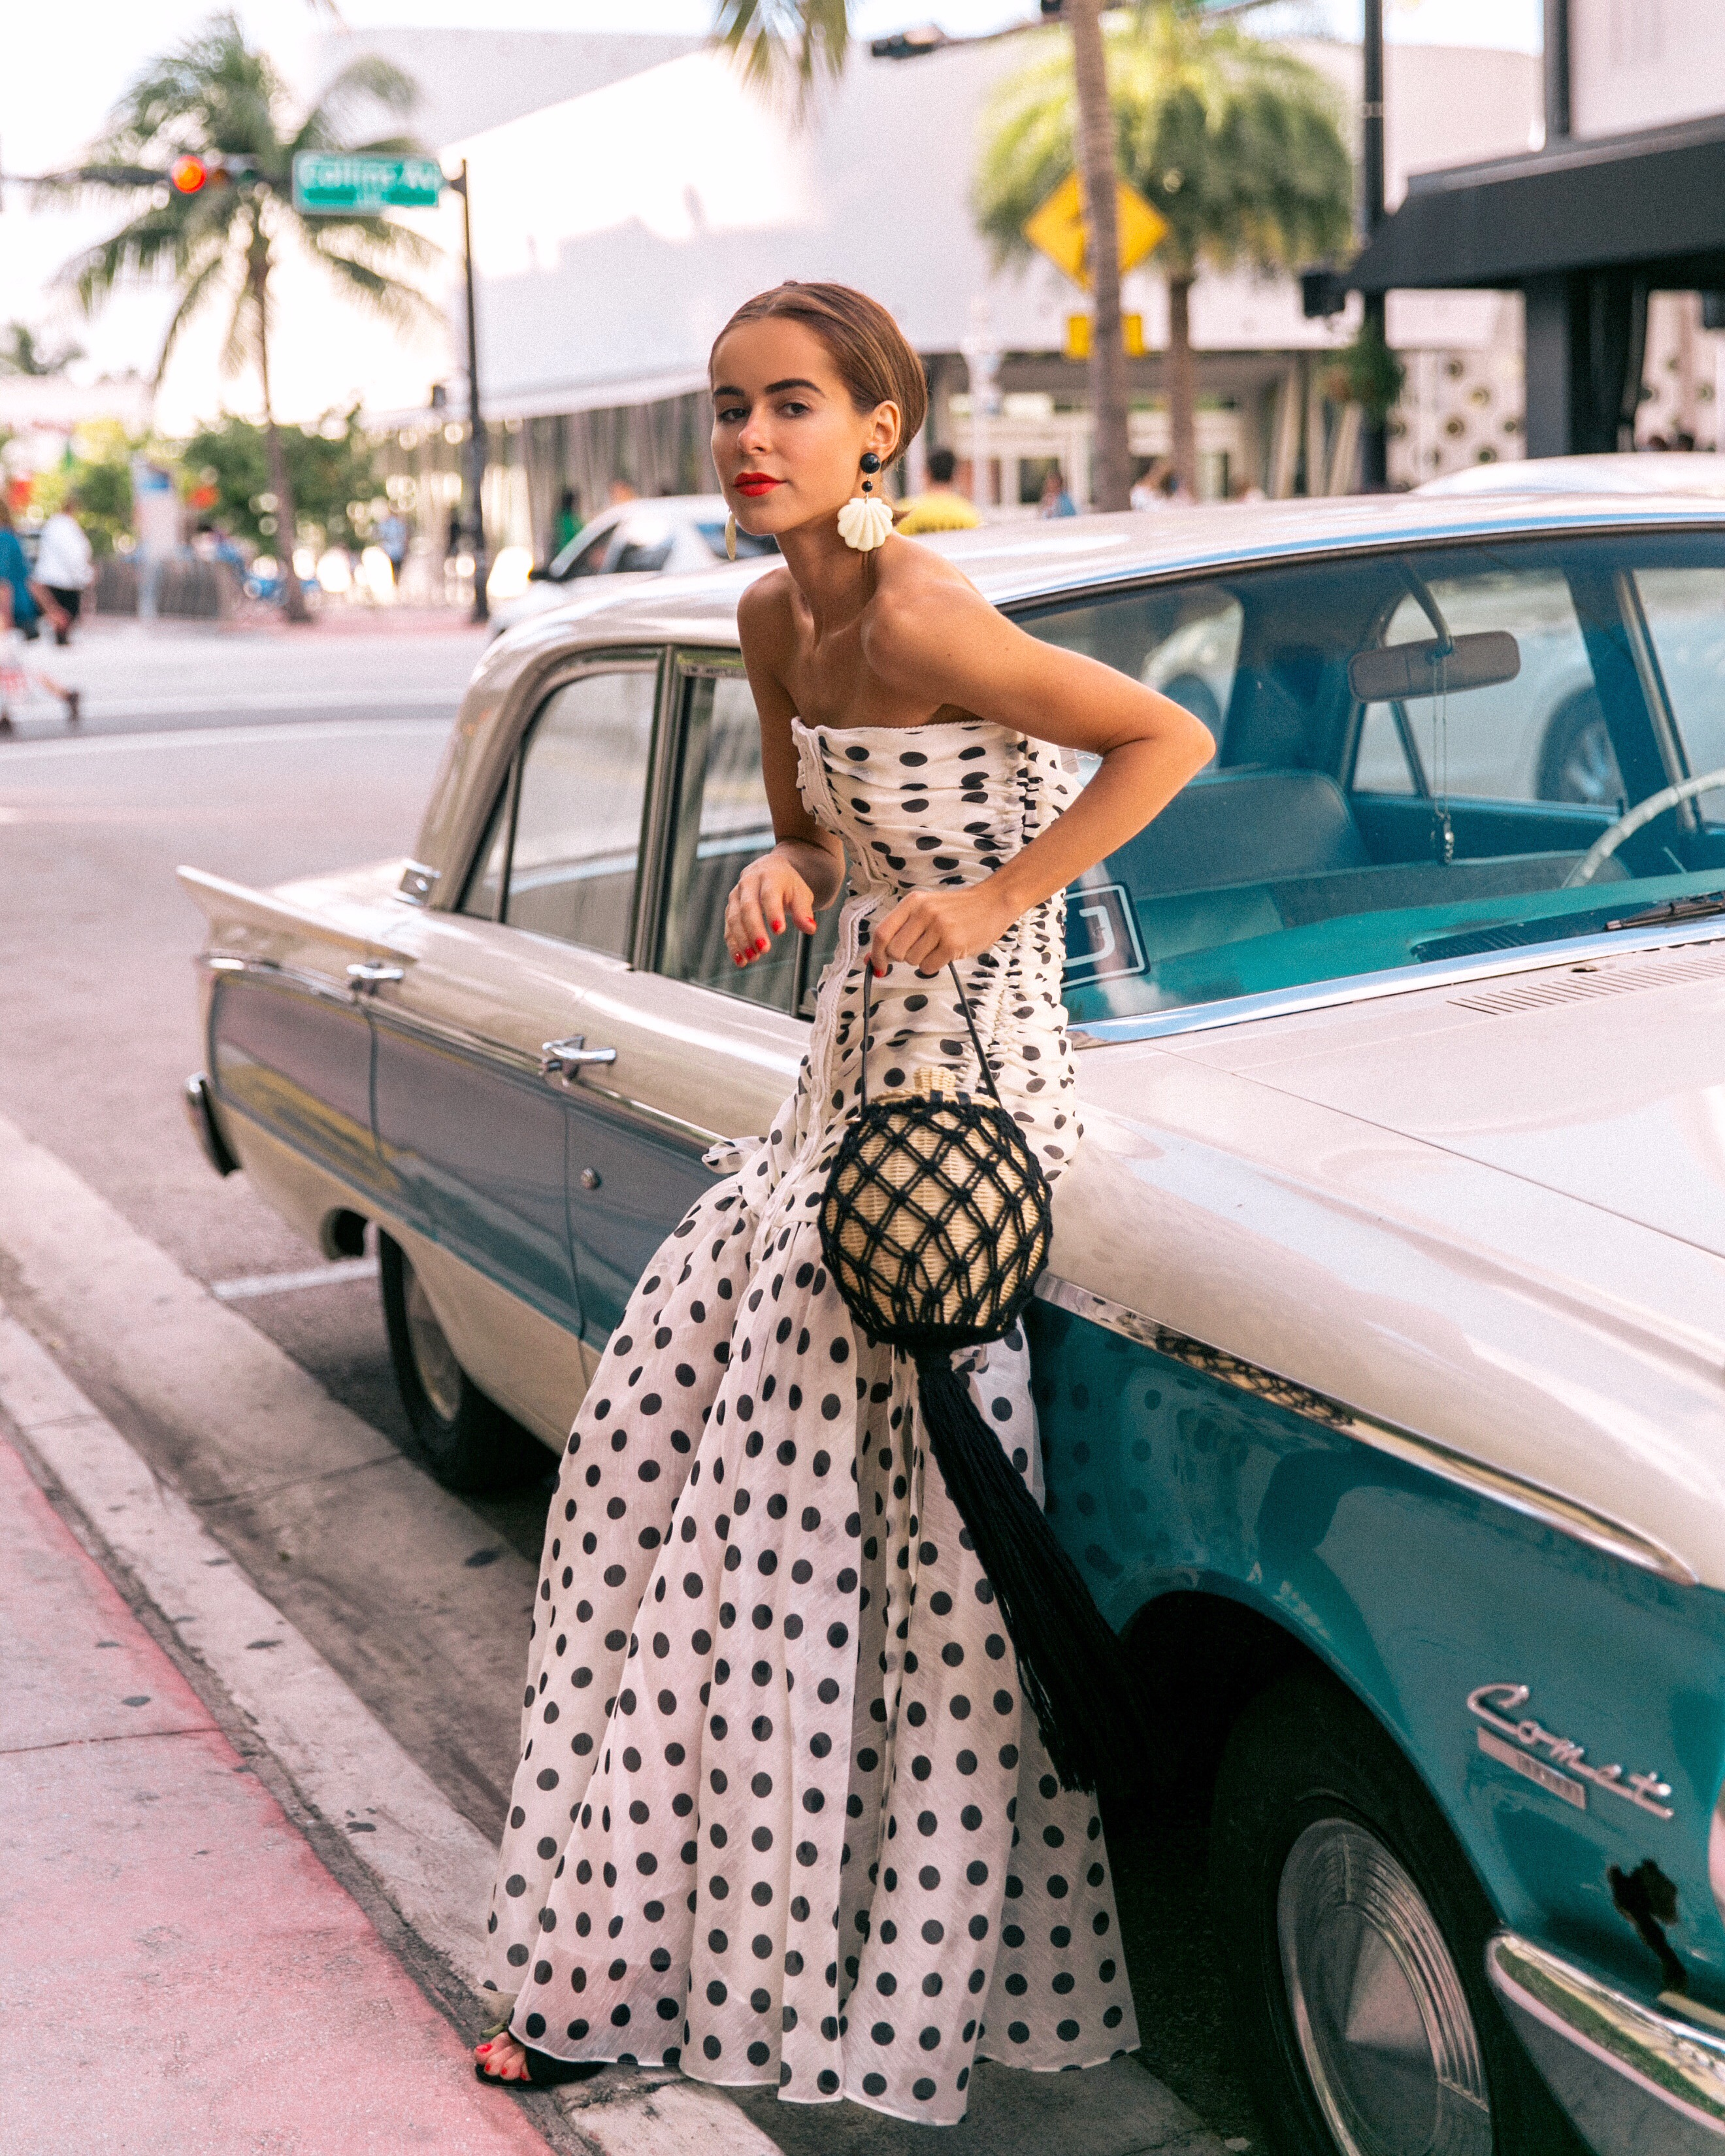 Style Blogger Stephanie Hill wears an ootd featuring Zimmerman dress in Miami